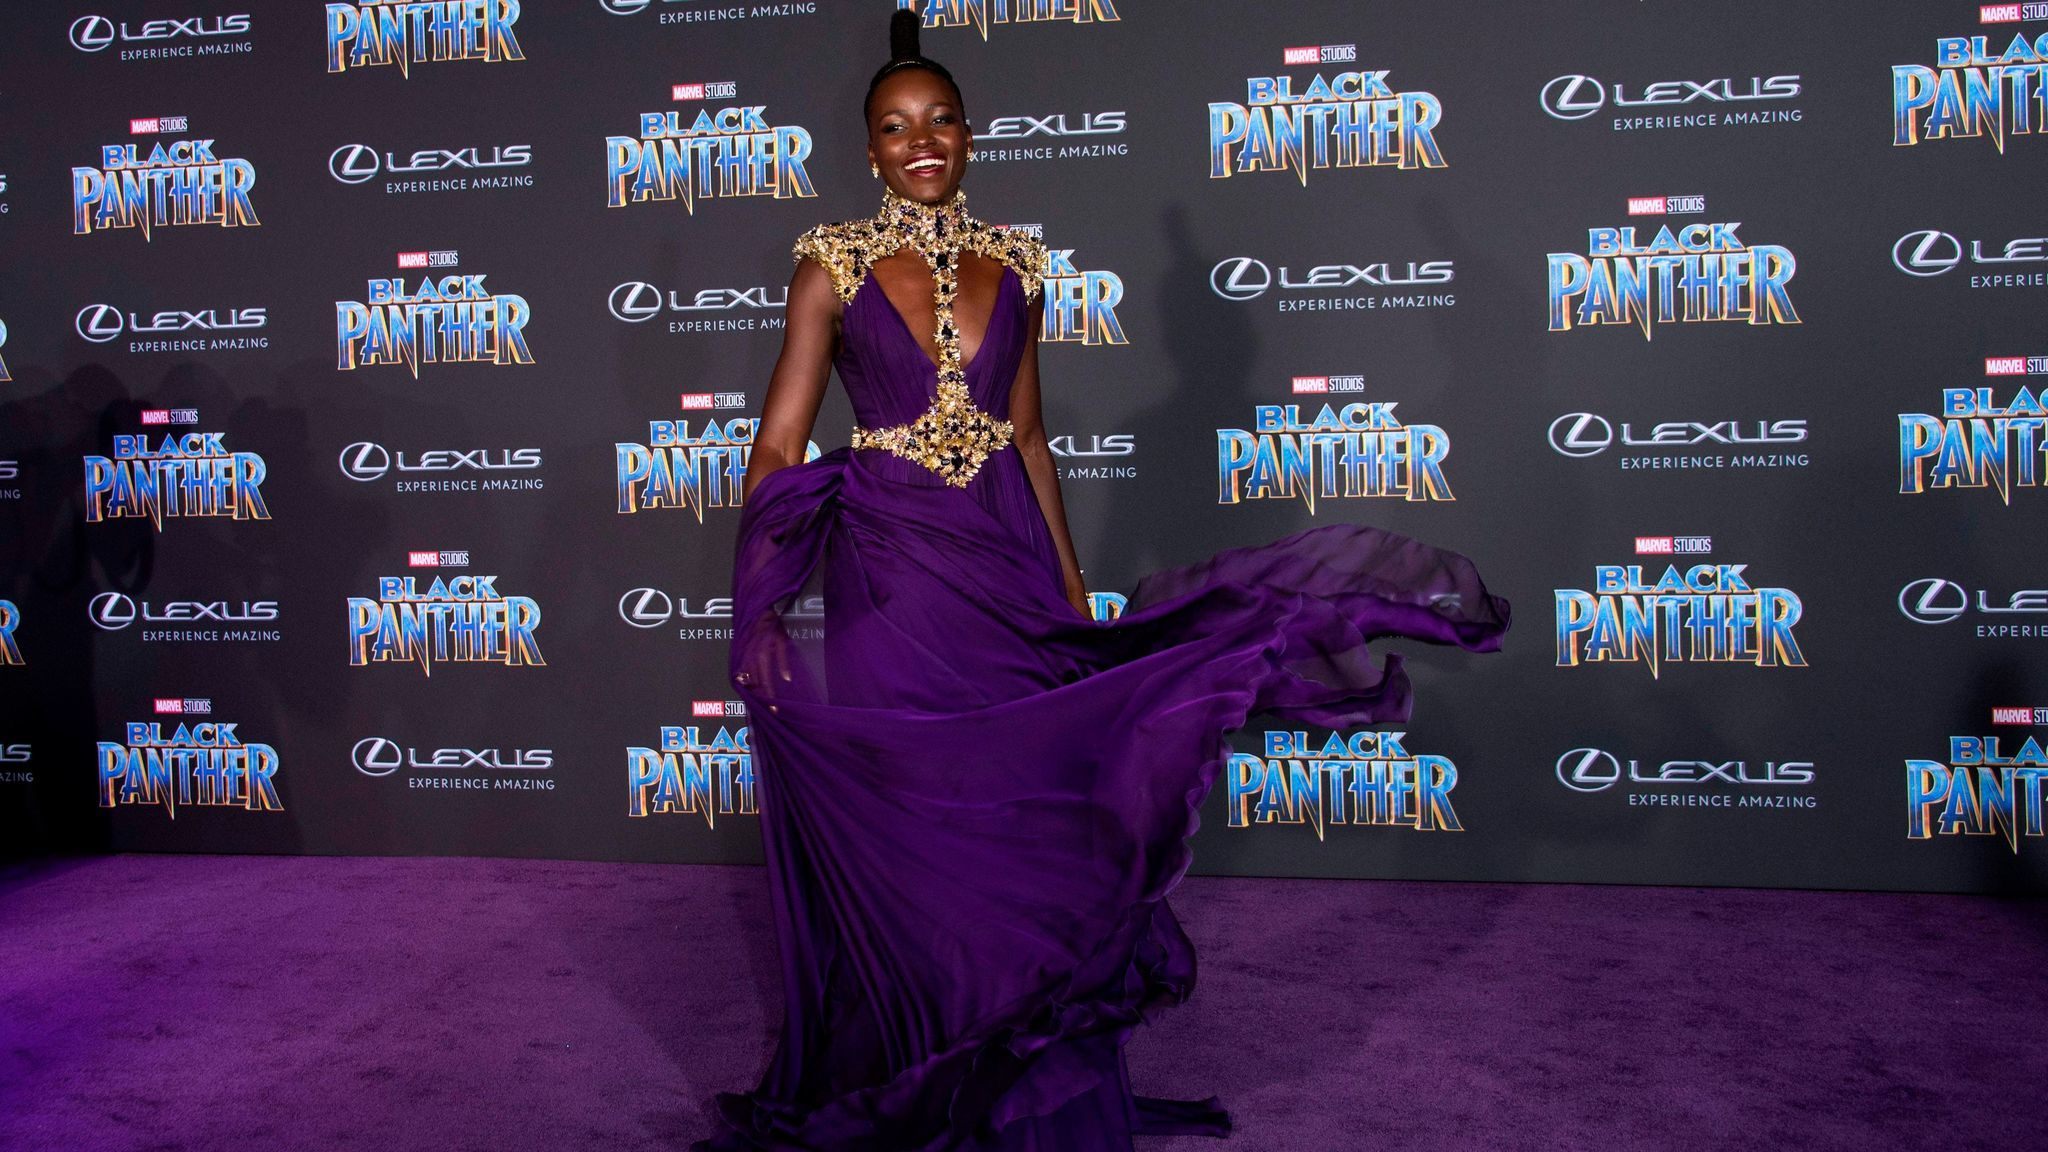 TOPSHOT-US-ENTERTAINMENT-FILM-PREMIERE-BLACKPANTHER